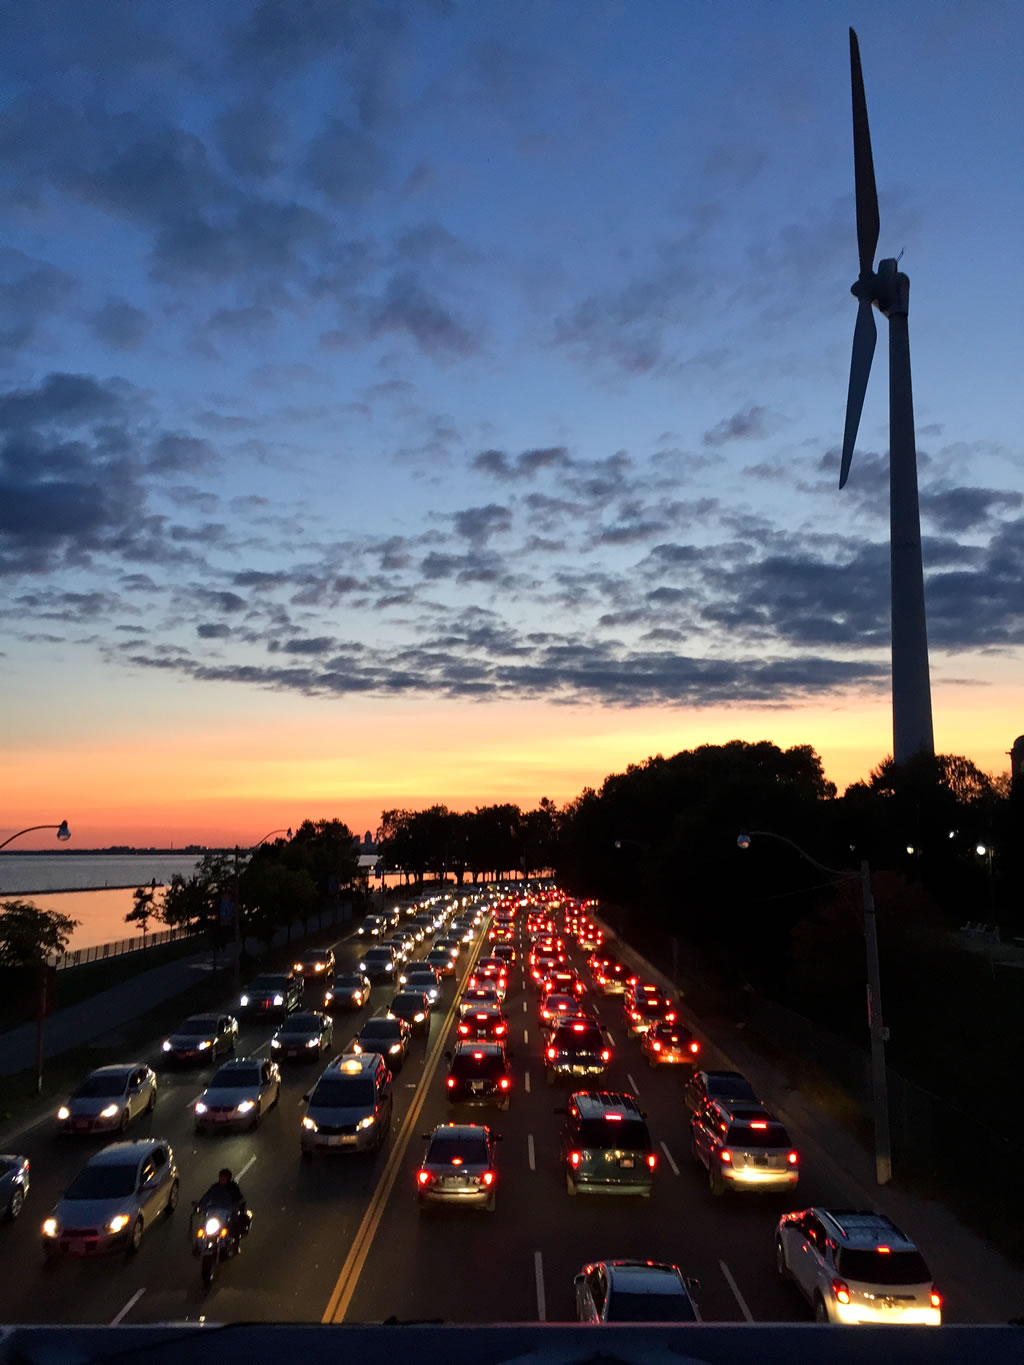 sunset time traffic jam photograph